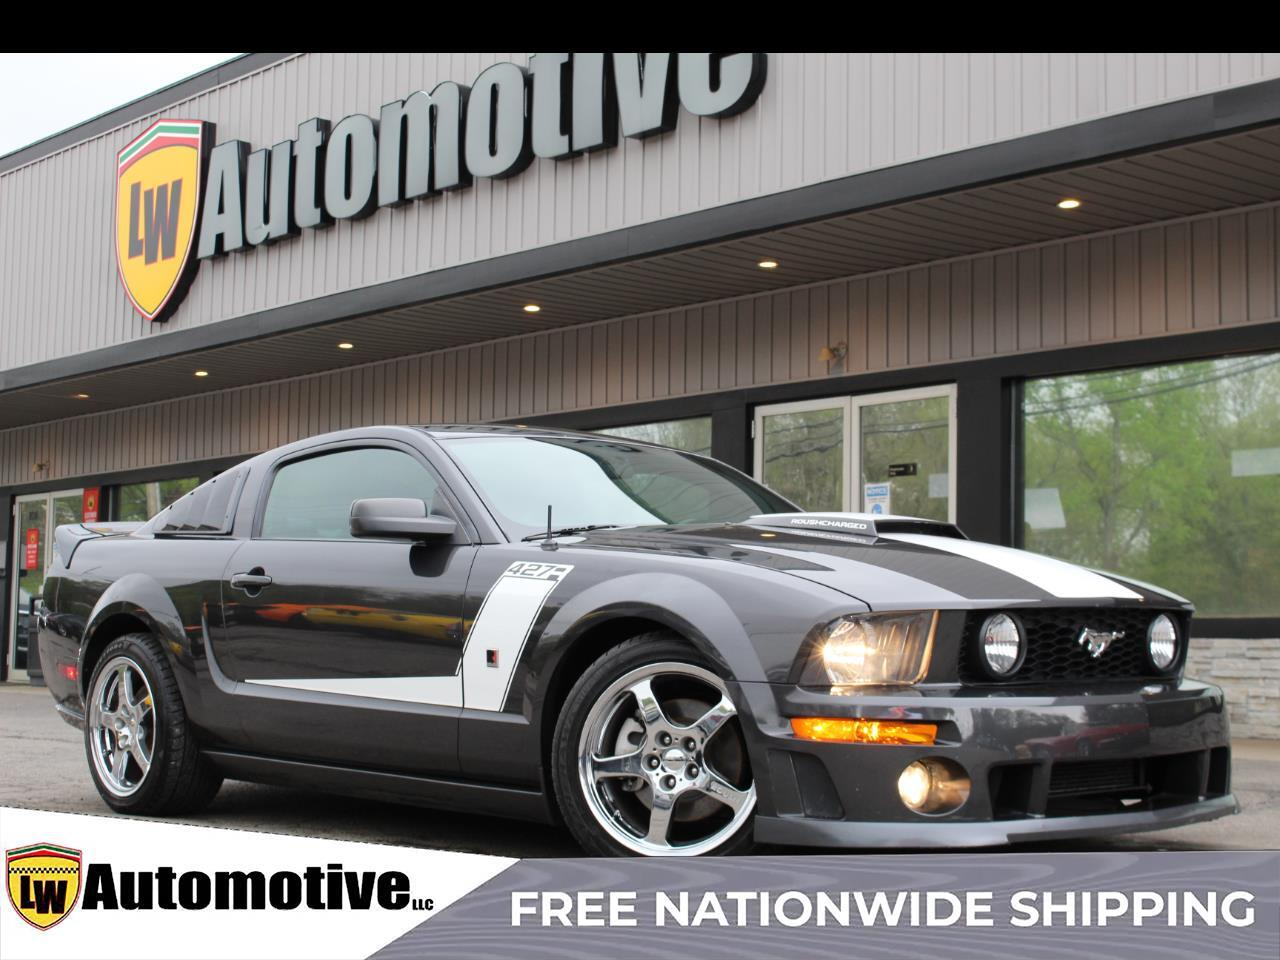 2007 Ford Mustang 427R Roush Edition